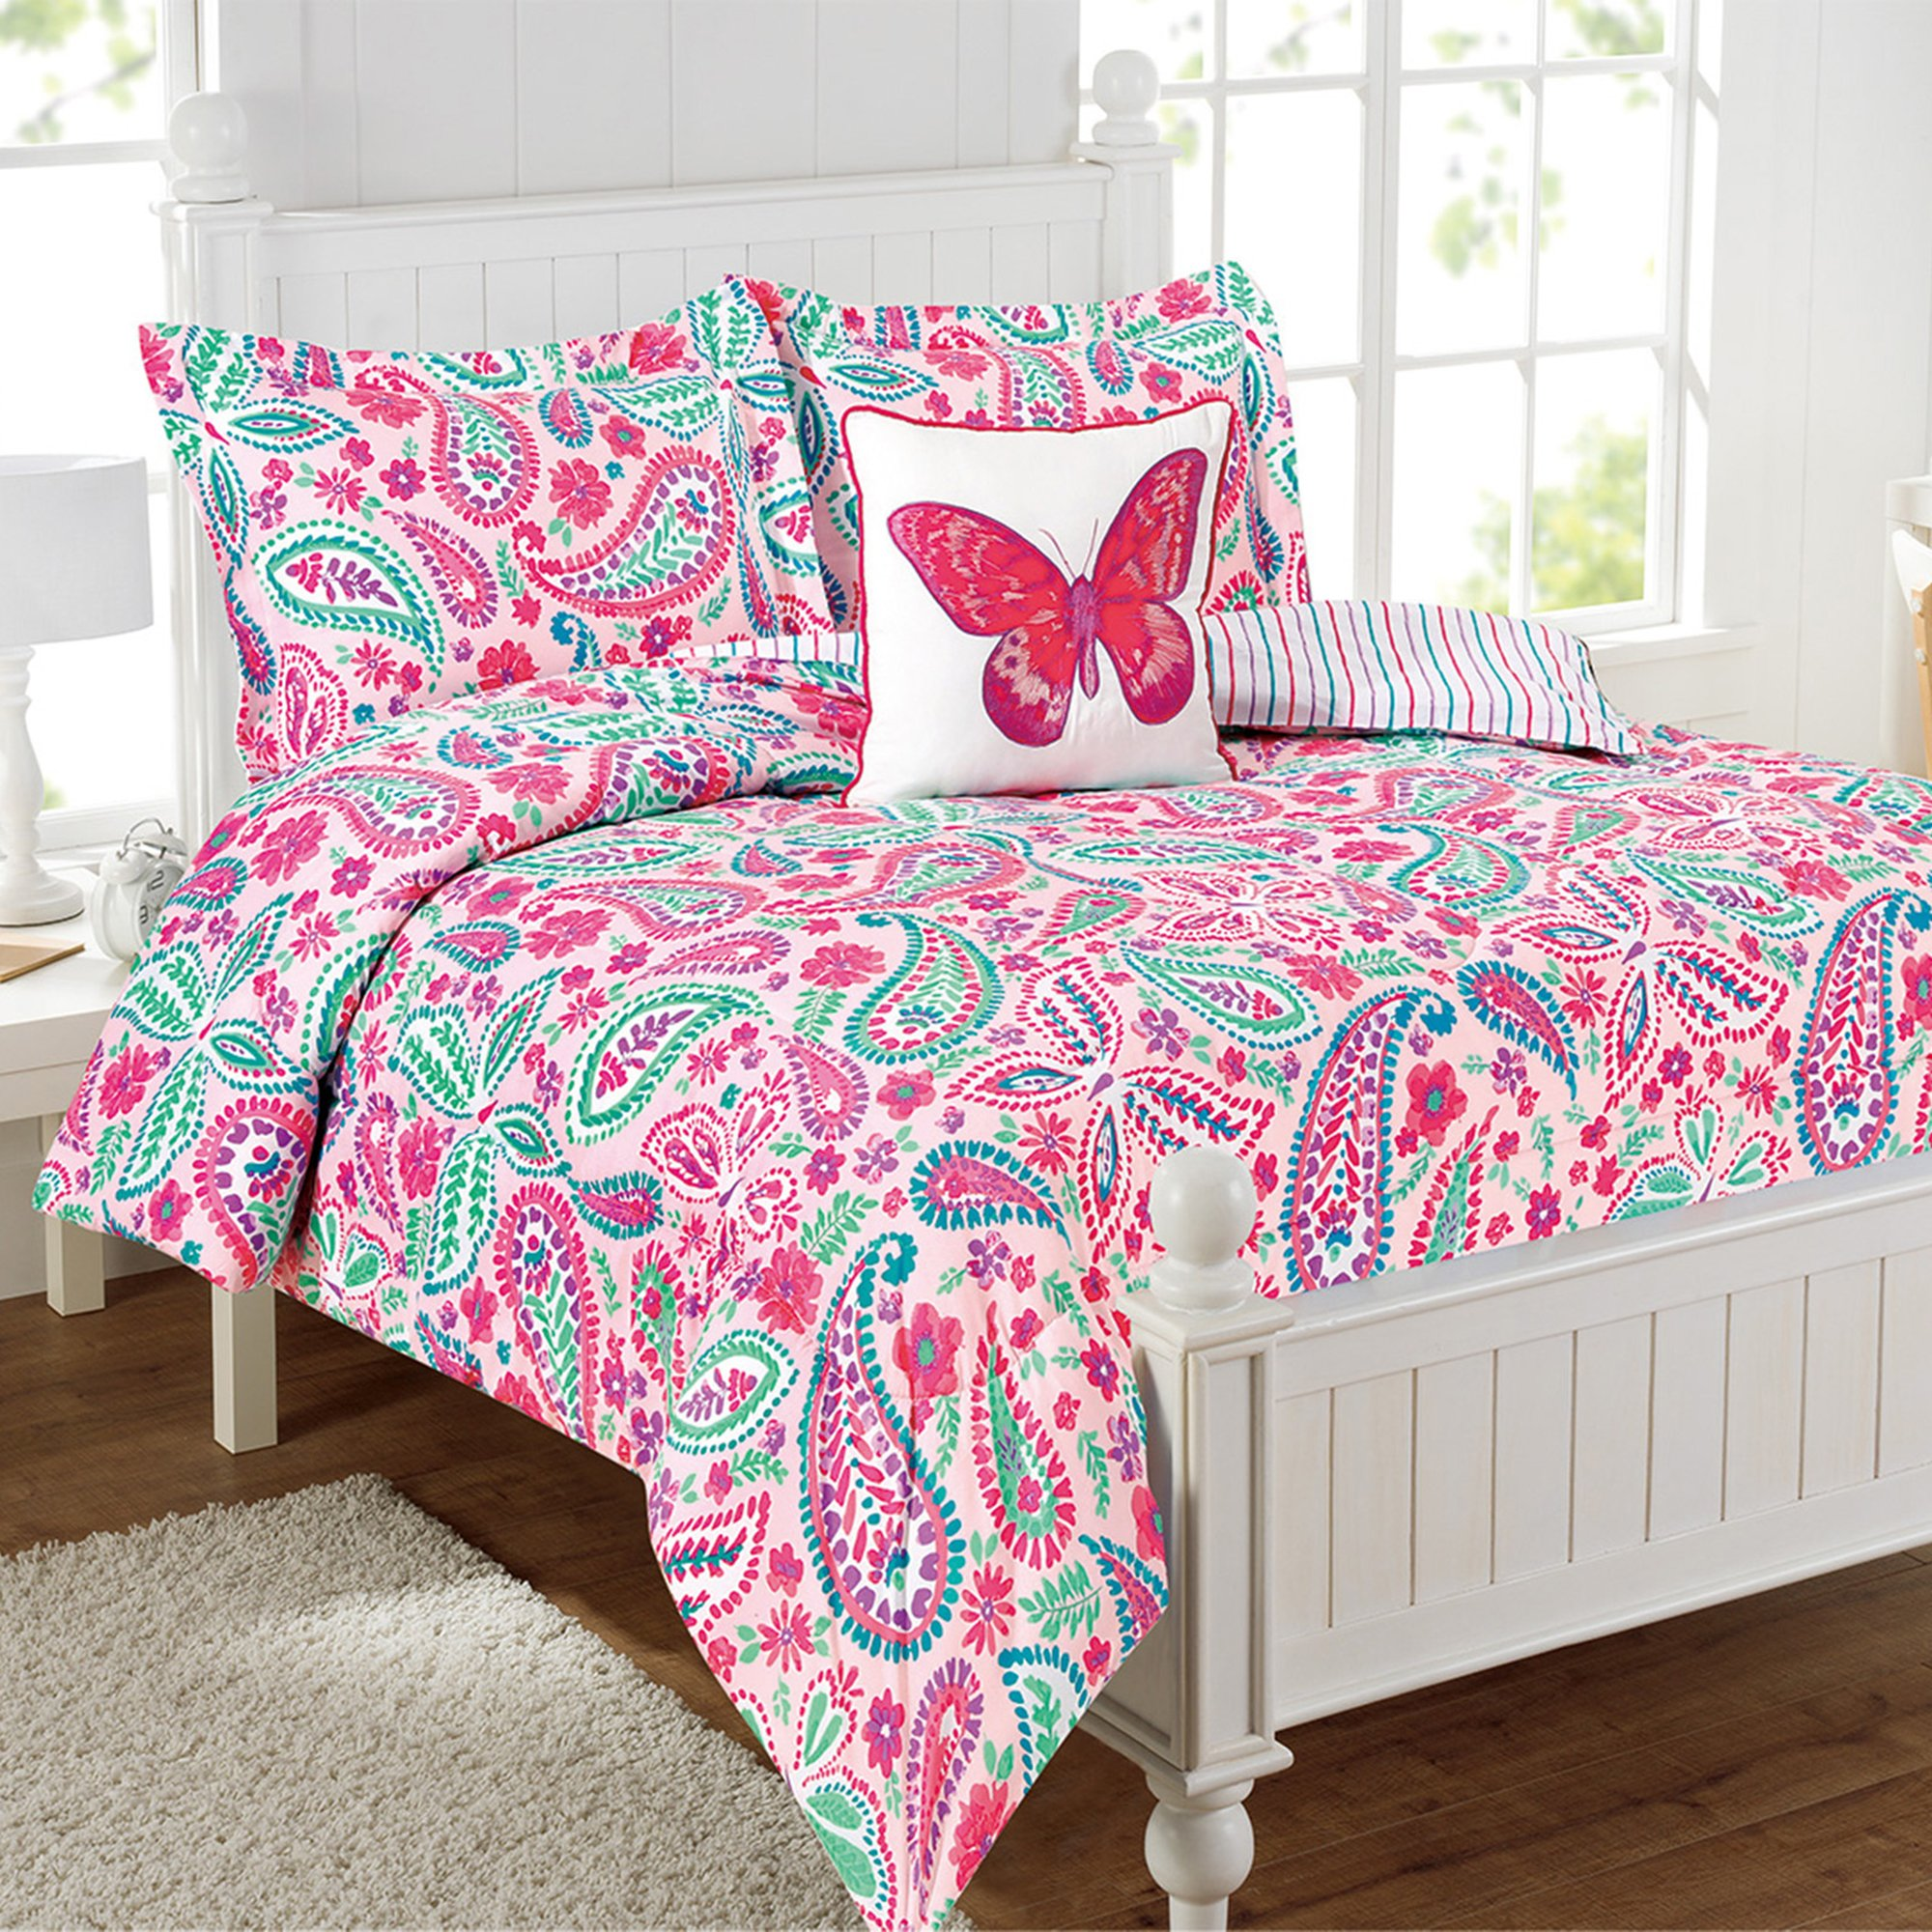 Mytex Watercolor Flutter 3-Piece Reversible Comforter Set Ultra Soft Microfiber, Butterfly, Flowers, Floral, Pink, Twin